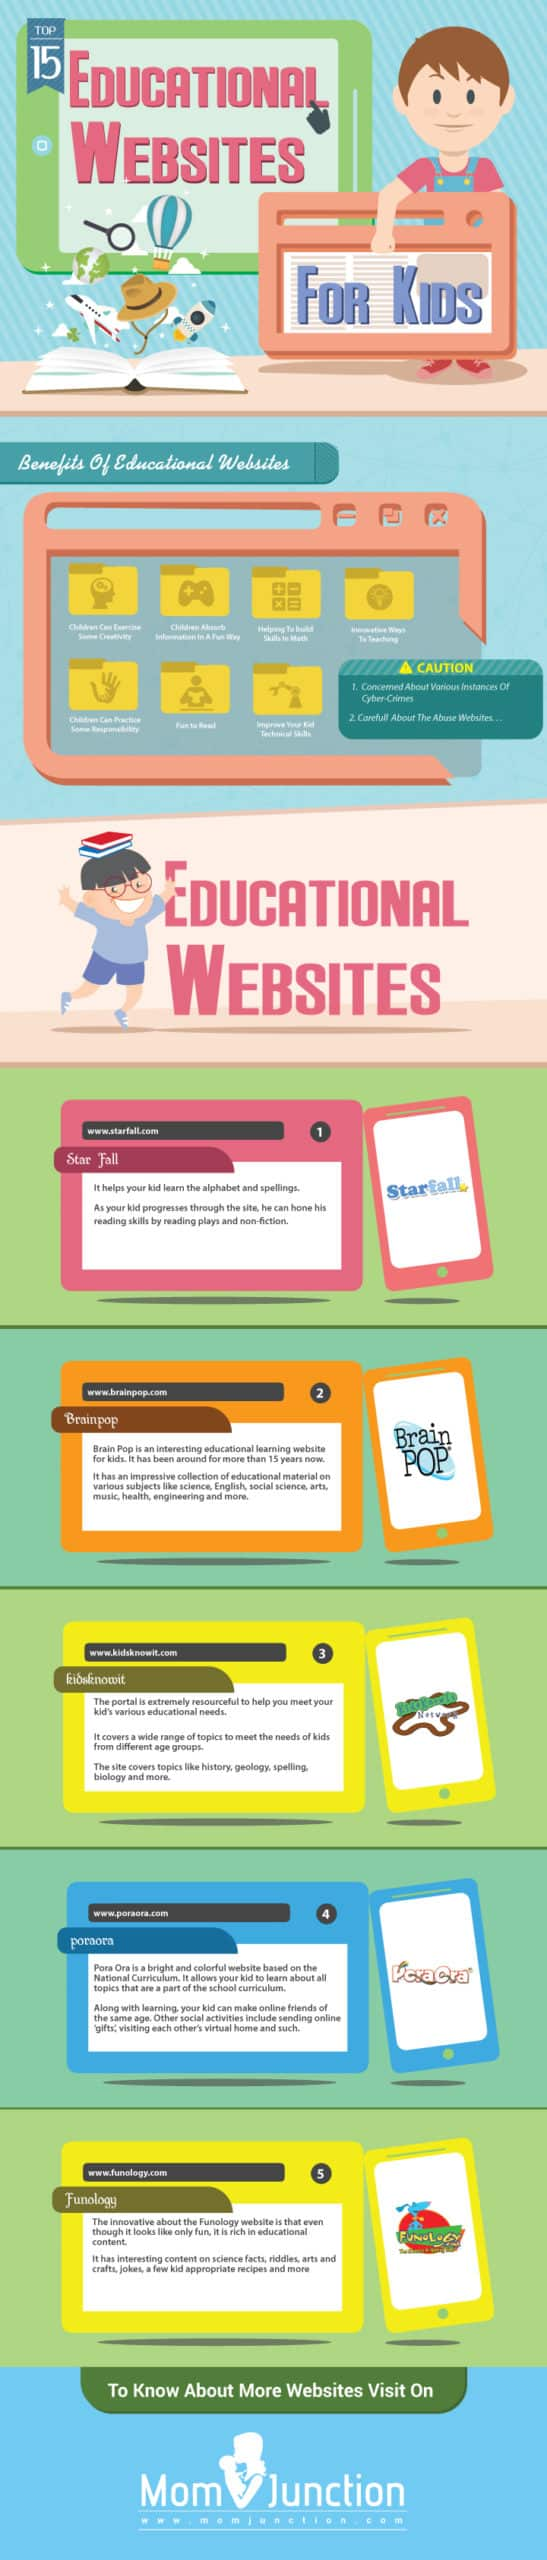 Top 5 Educational Websites For Kids Infographic